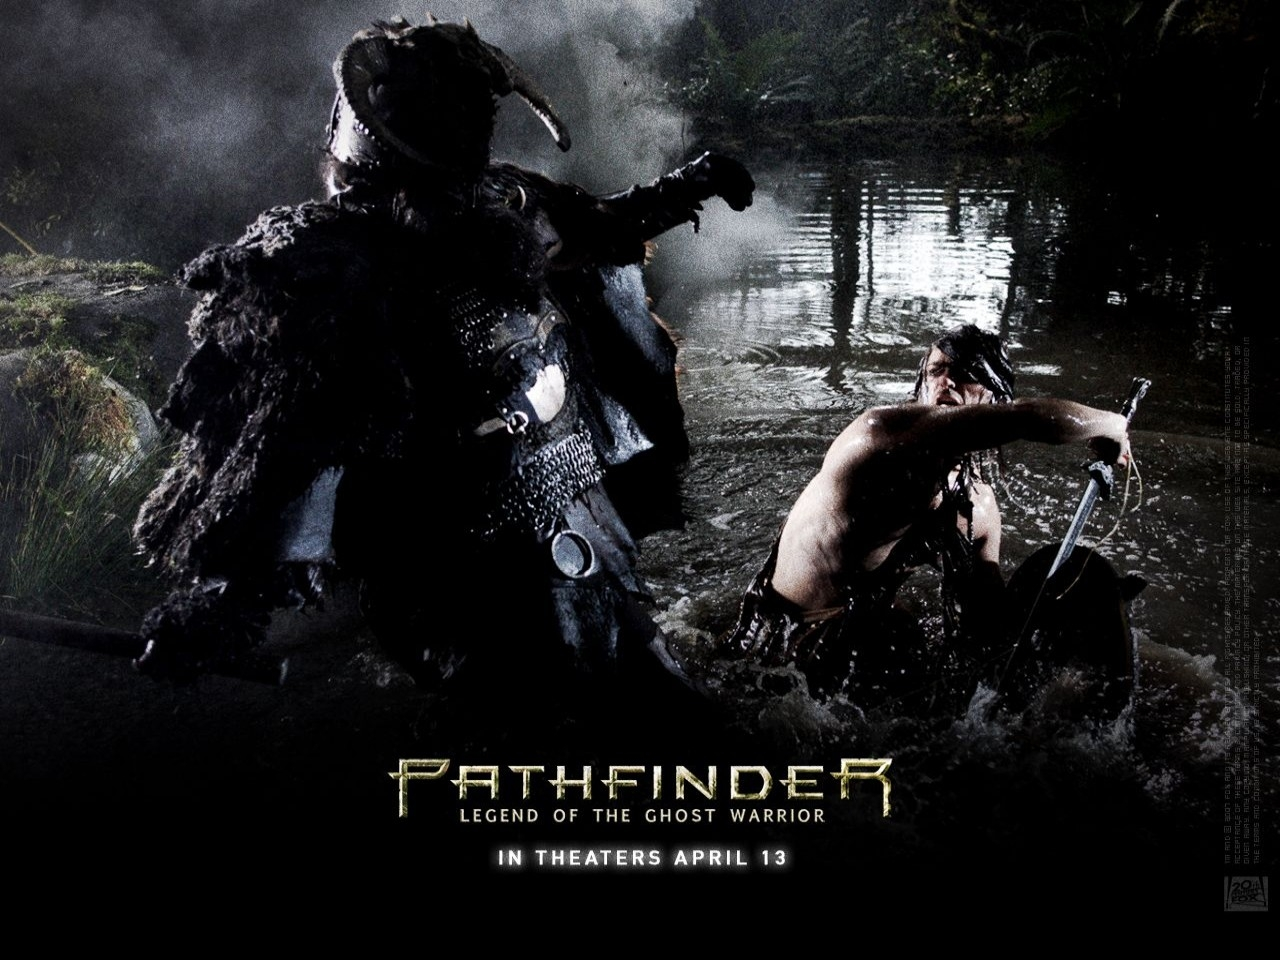 Wallpaper del film La leggenda del Guerriero Vichingo, Pathfinder